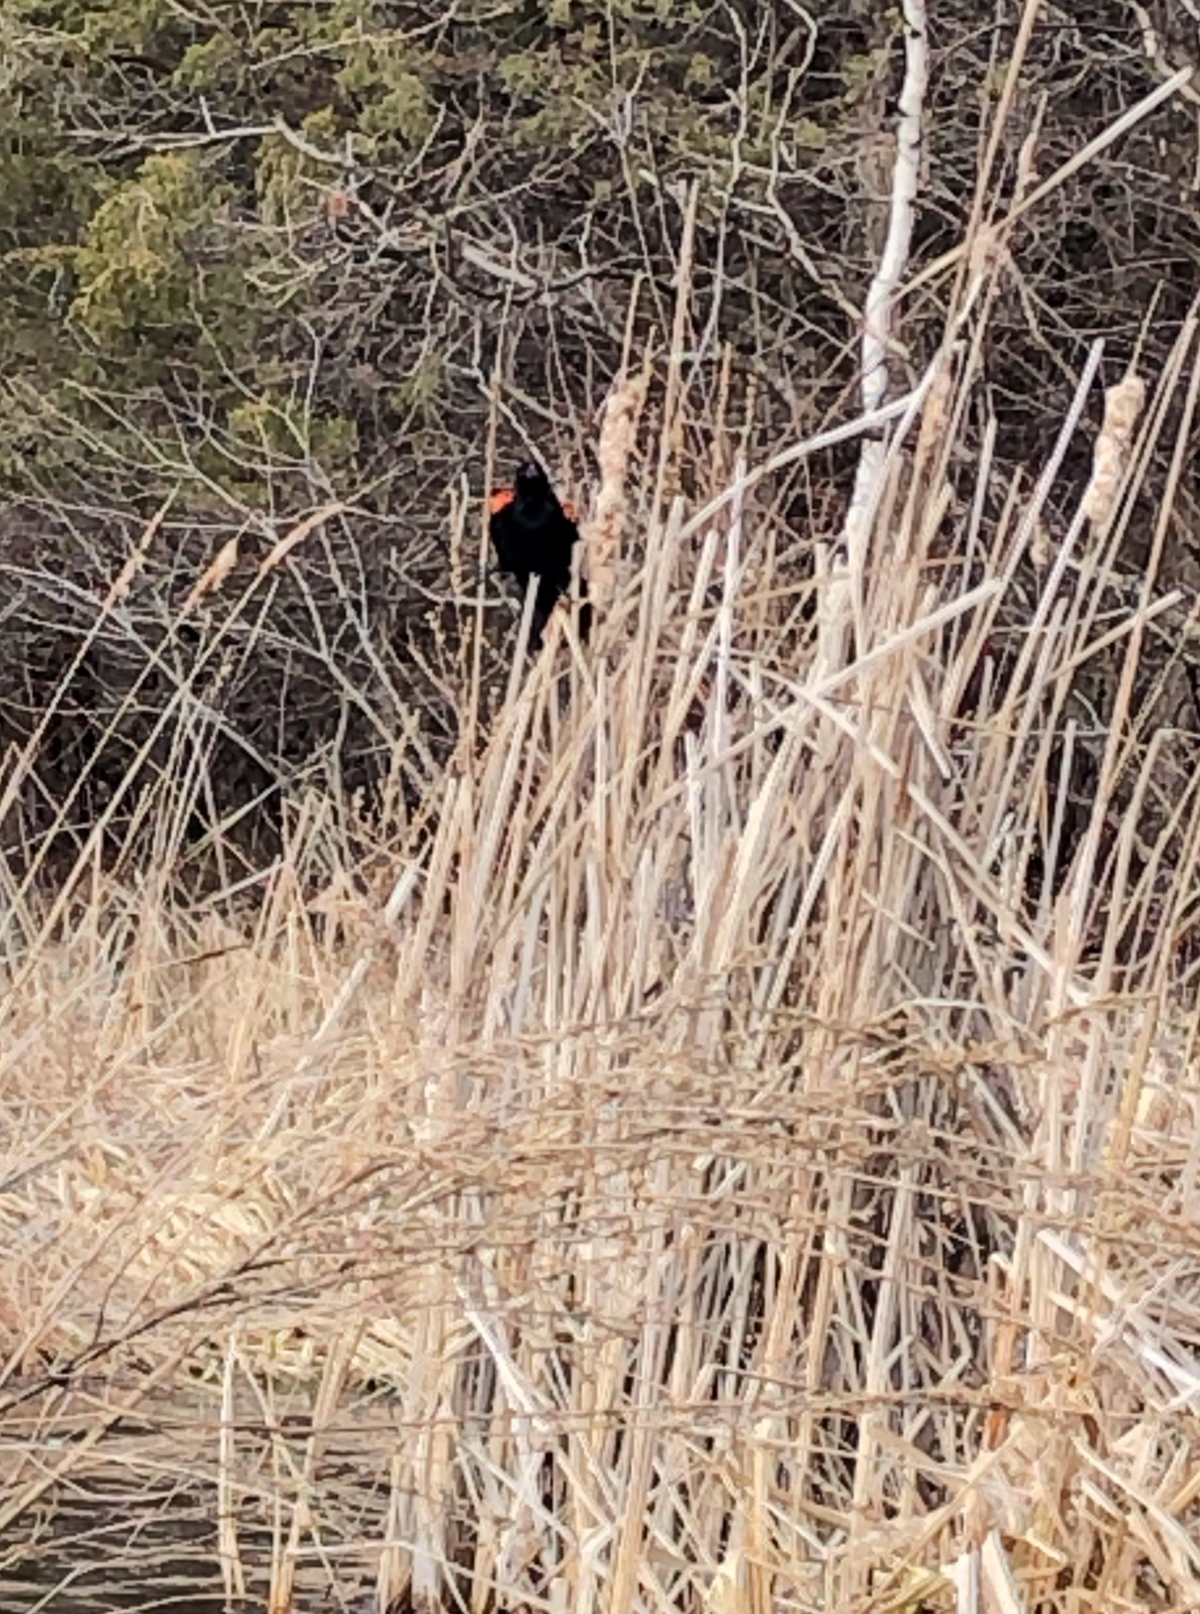 Red Wing Blackbird singing in the wind and reeds.